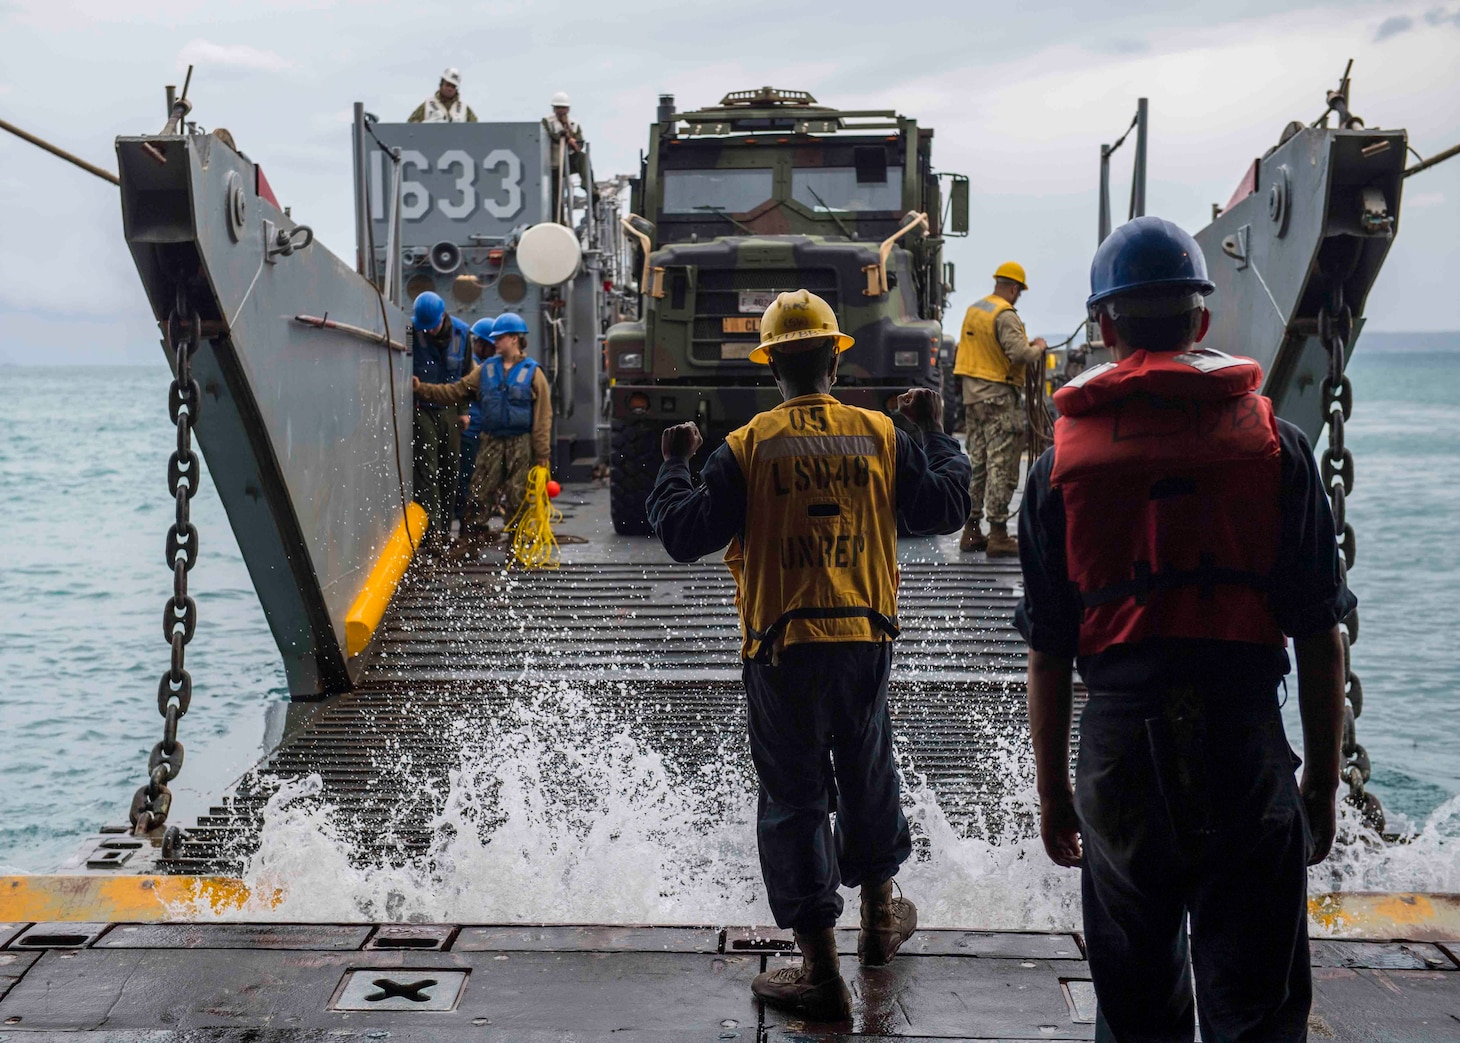 OKINAWA, Japan (Oct. 29, 2018) Boatswain's Mate 3rd Class Nayyaamunhotep Stubbs signals the Landing Craft, Utility (LCU) 1633 to approach the well deck of the amphibious dock landing ship USS Ashland (LSD 48) to receive equipment in preparation to conduct Defense Support to Civil Authorities (DSCA) efforts. Sailors and Marines from Ashland, part of the Wasp Amphibious Ready Group and 31st Marine Expeditionary Unit team, are preparing to provide Department of Defense support to the Commonwealth of the Northern Mariana Islands' civil and local officials as part of the FEMA-supported Typhoon Yutu recovery efforts.